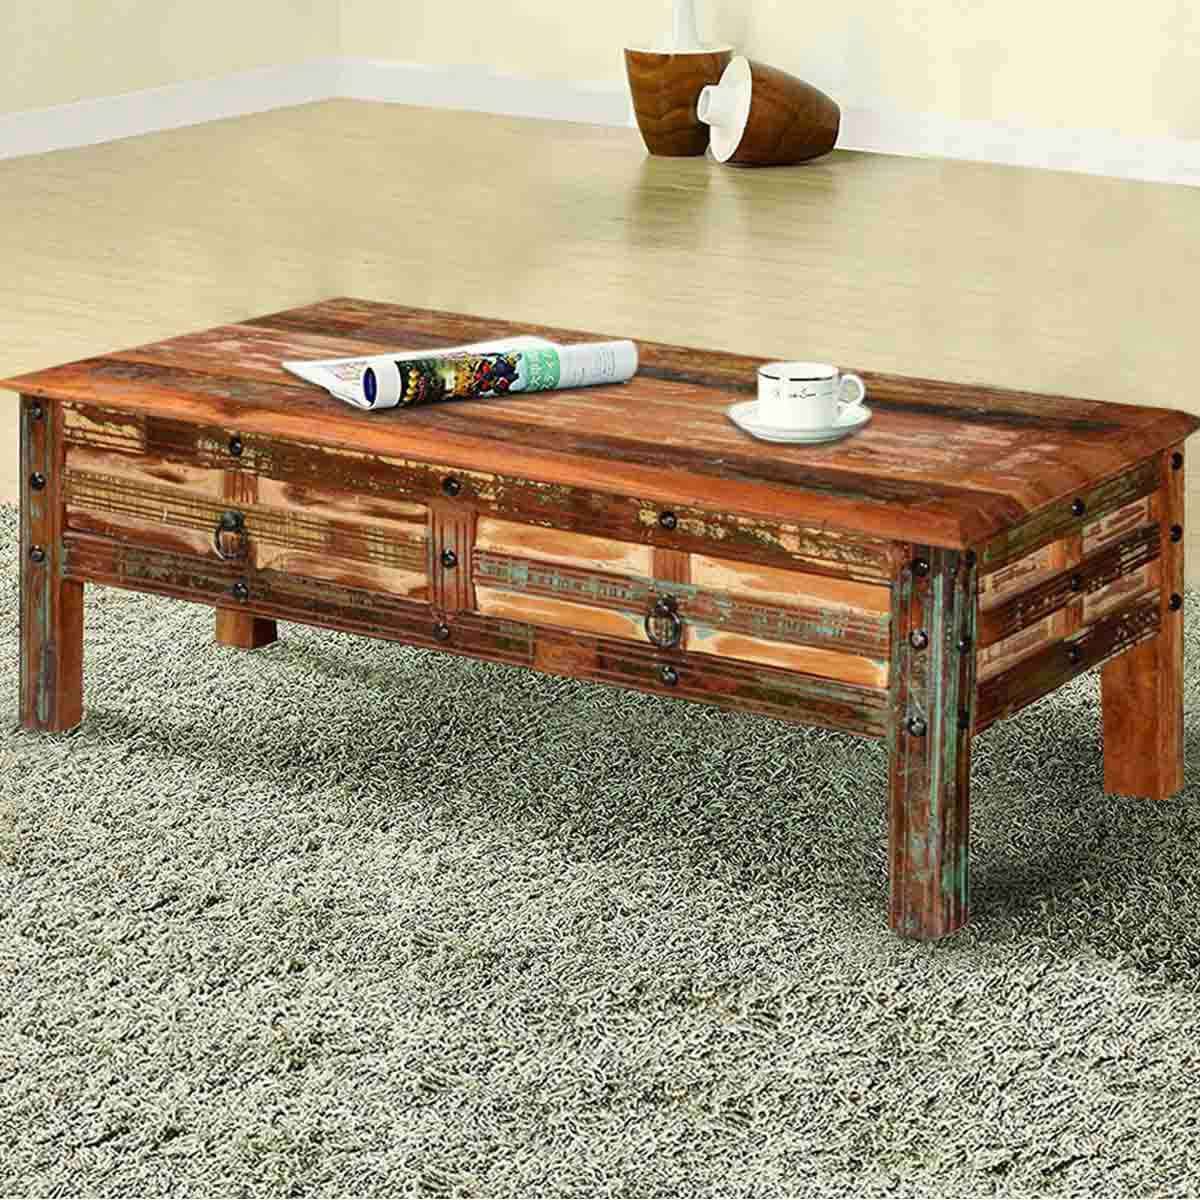 Pioneer rustic reclaimed wood 45 coffee table w drawers Rustic black coffee table